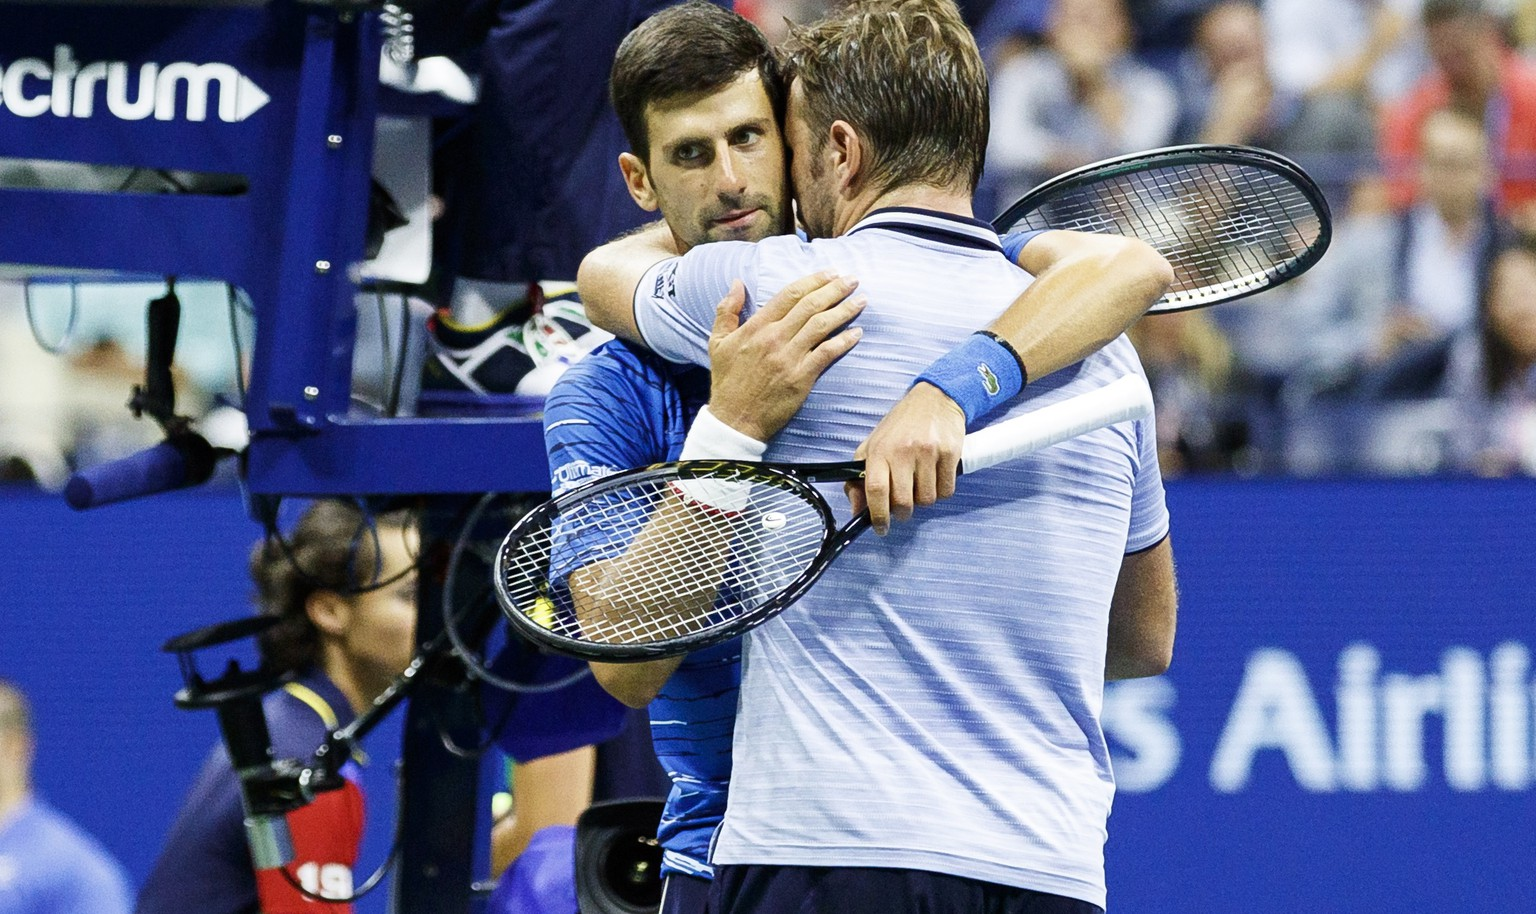 epa07811916 Novak Djokovic (L) of Serbia embraces Stan Wawrinka (R) of Switzerland after Djokovic retired in the third set during a match on the seventh day of the US Open Tennis Championships the USTA National Tennis Center in Flushing Meadows, New York, USA, 01 September 2019. The US Open runs from 26 August through to 08 September 2019.  EPA/JUSTIN LANE